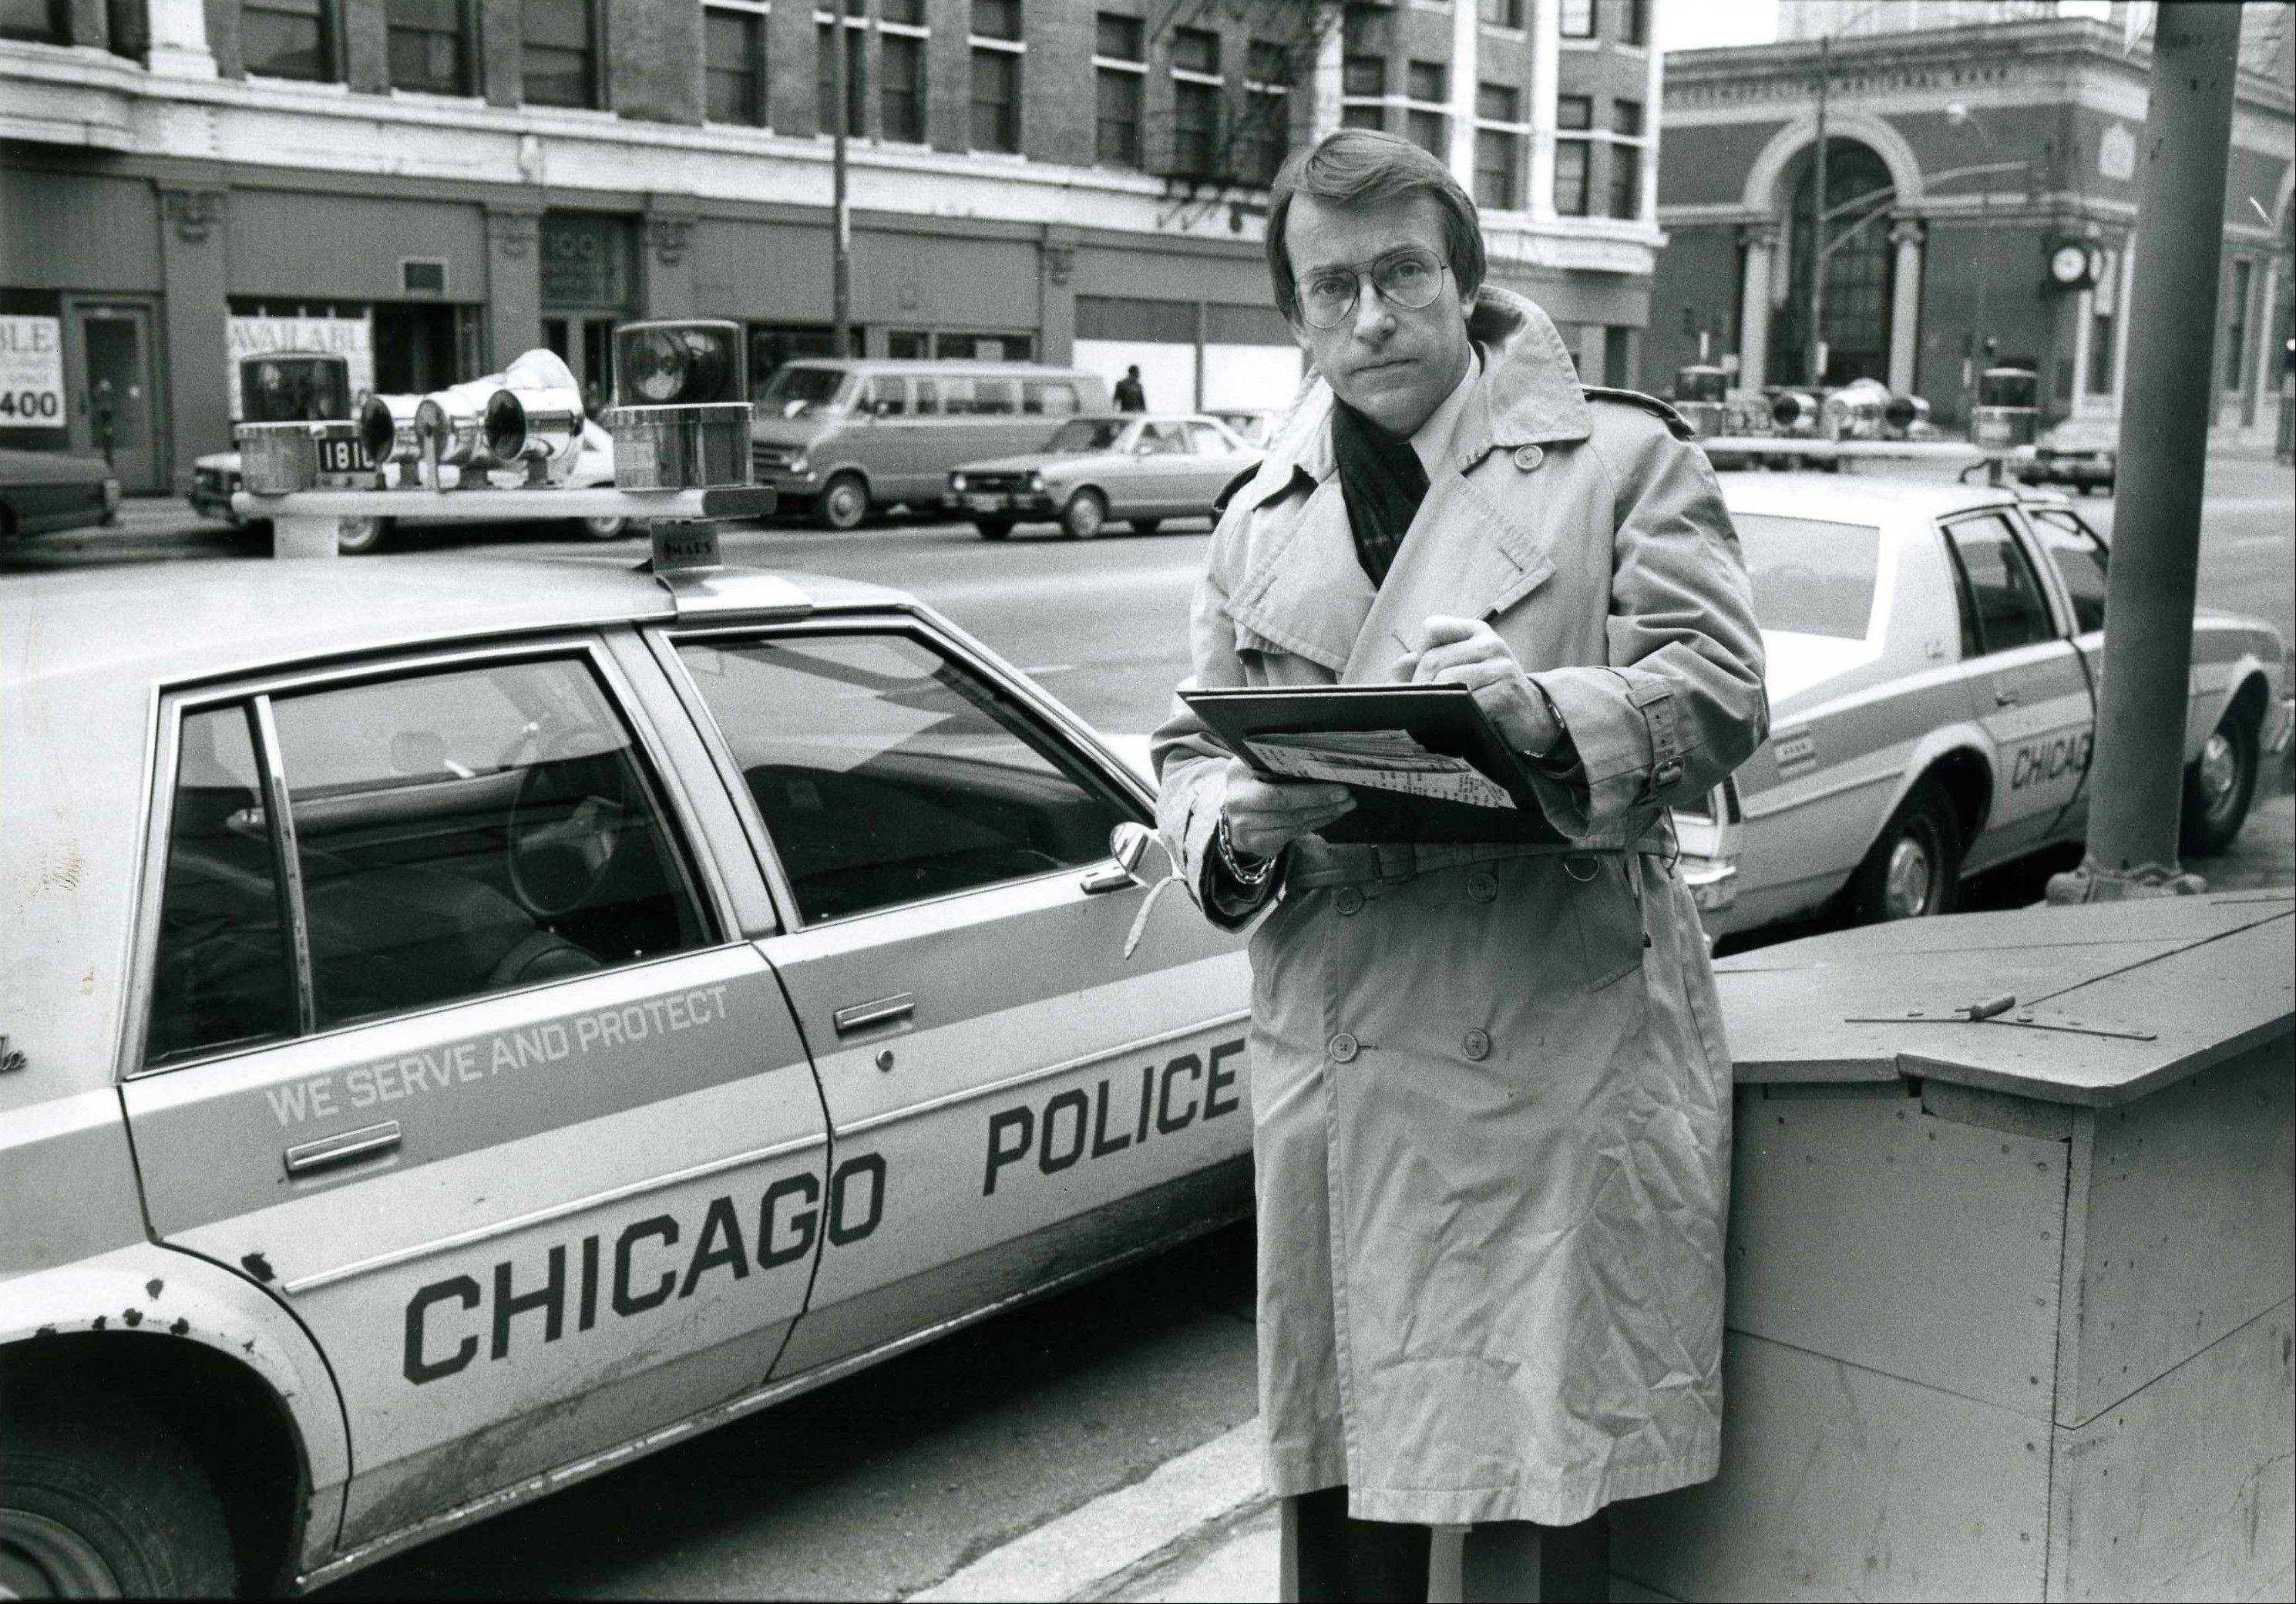 In this Feb. 2, 1983 image released by ABC, ABC News correspondent Richard Threlkeld is shown in Chicago. Threlkeld, who worked for ABC News from 1982-89 and spent the majority of his career at CBS News, died Friday, Jan. 13, 2012, in Amagansett, N.Y., and was pronounced dead at Southampton Hospital. He lived nearby in East Hampton.�(AP Photo/ABC Photo Archives)